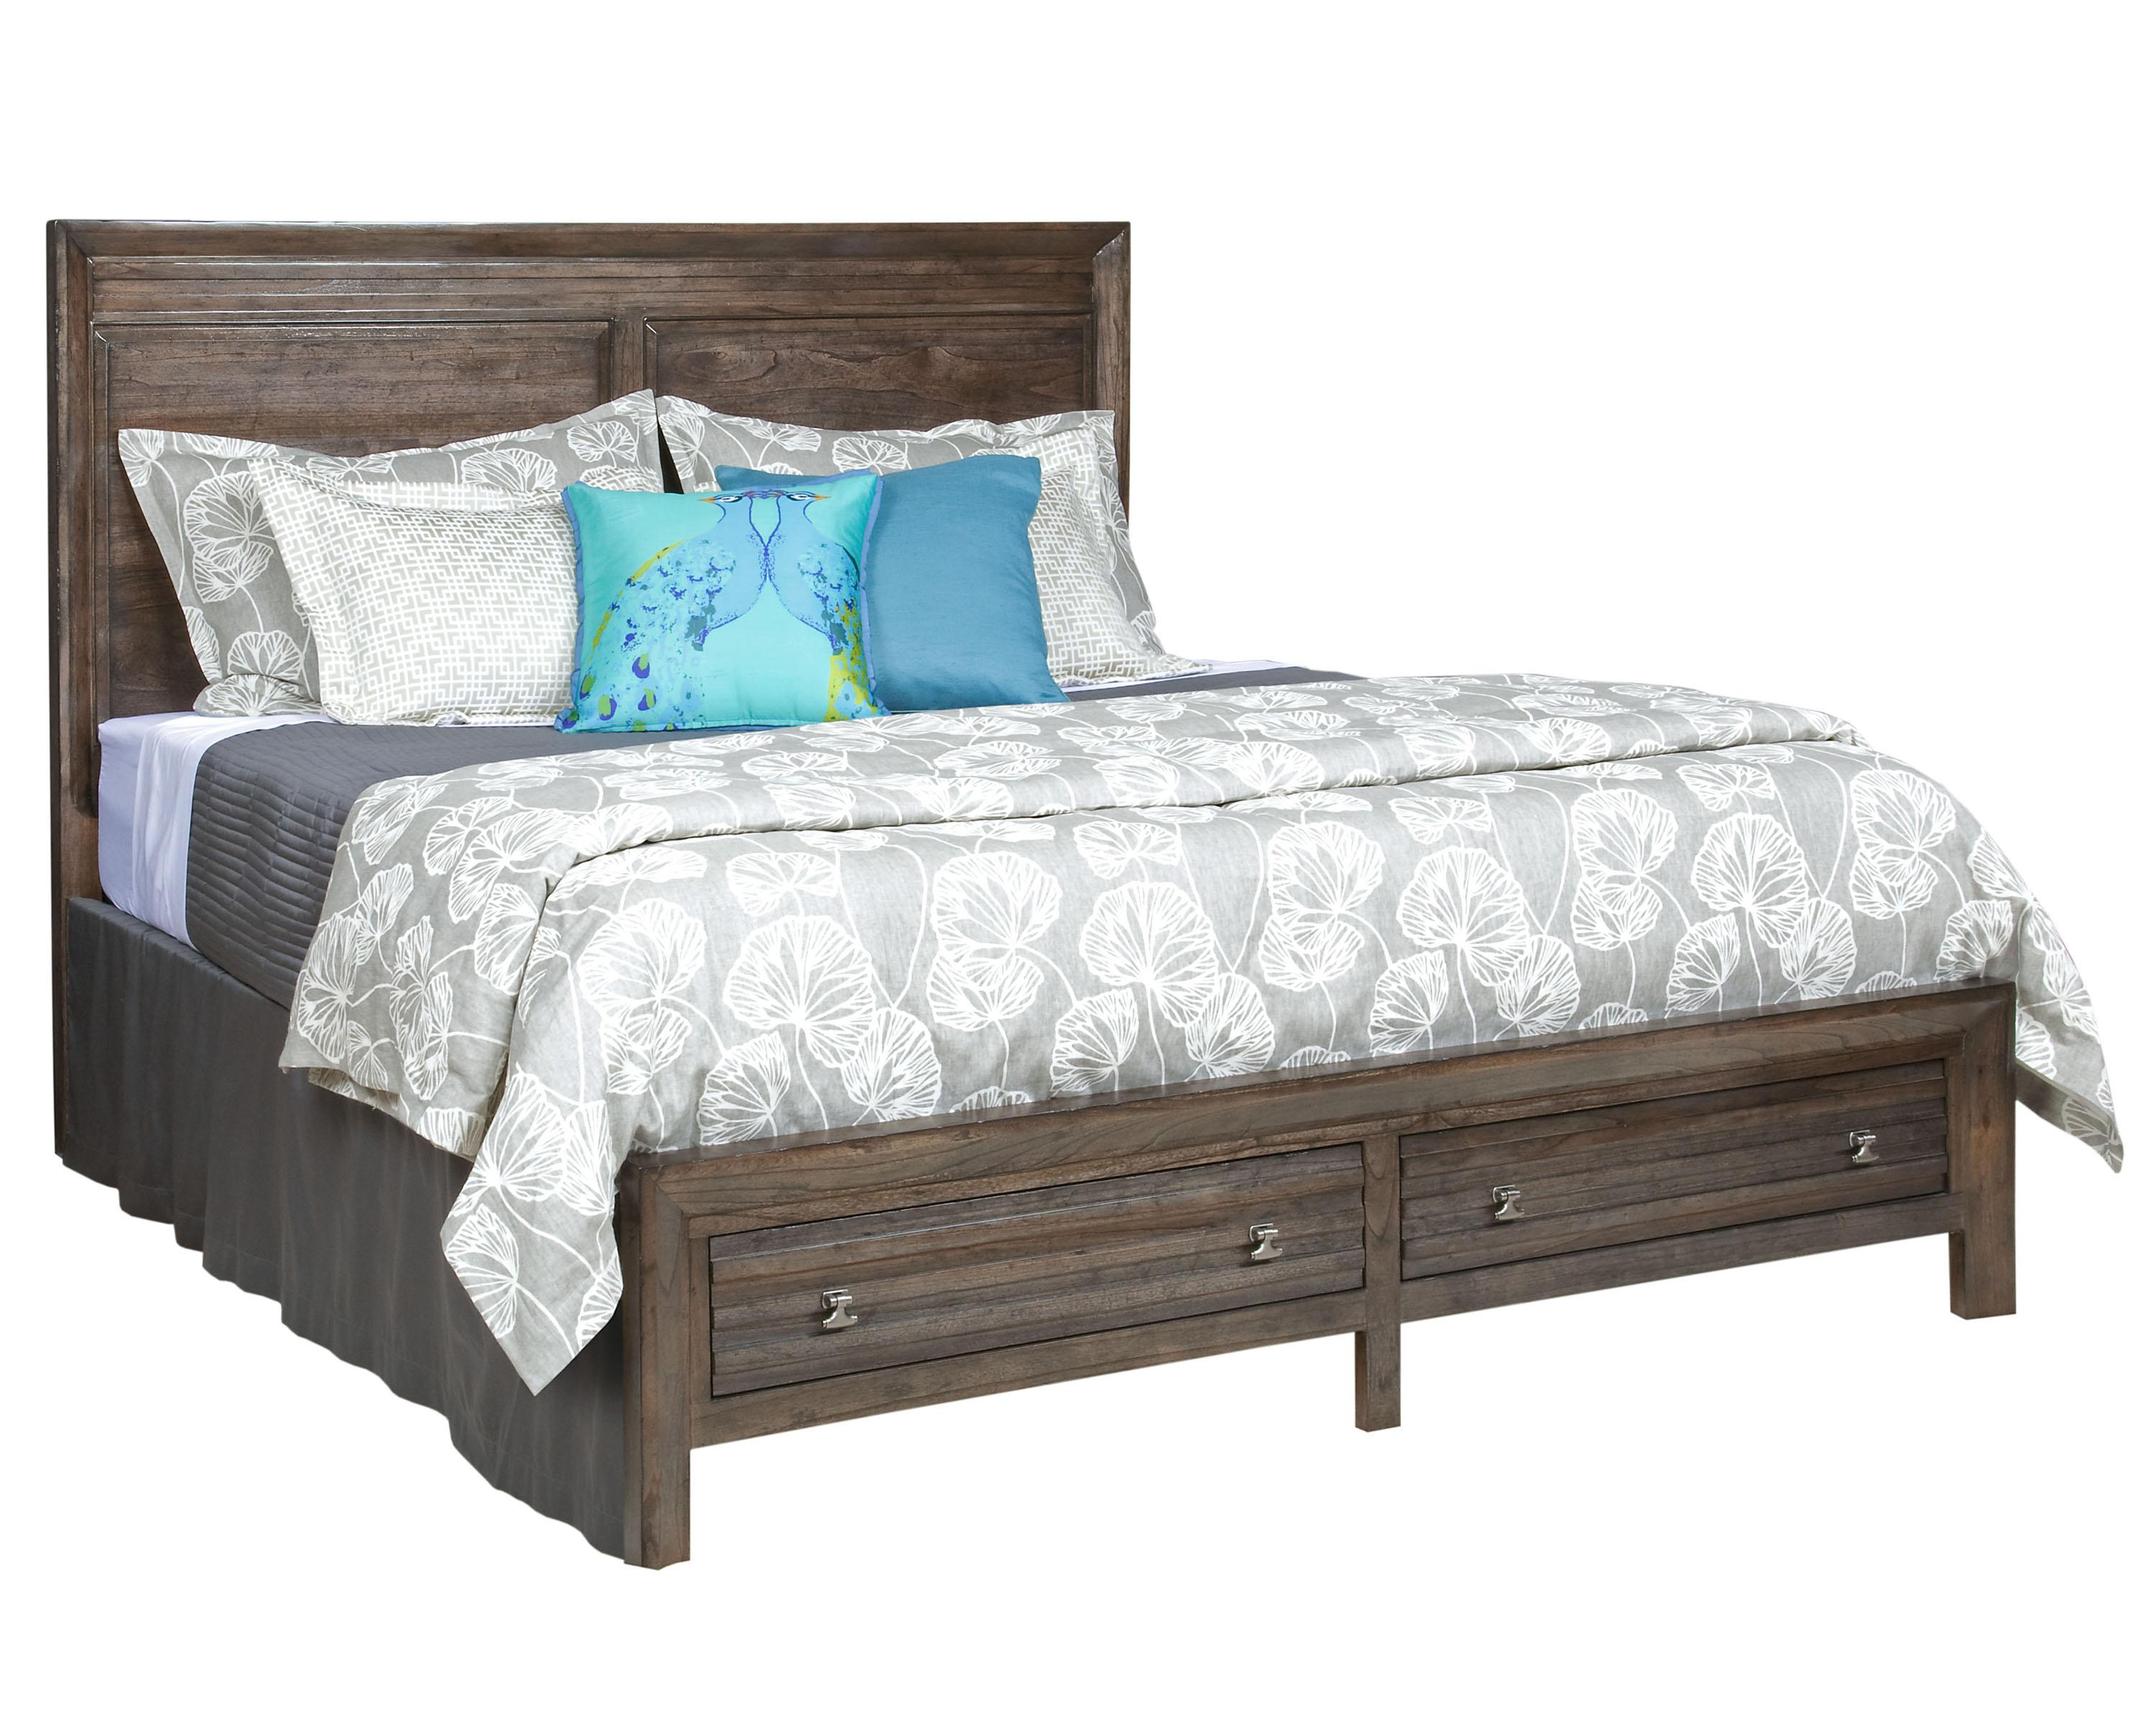 King Border's Panel Storage Bed